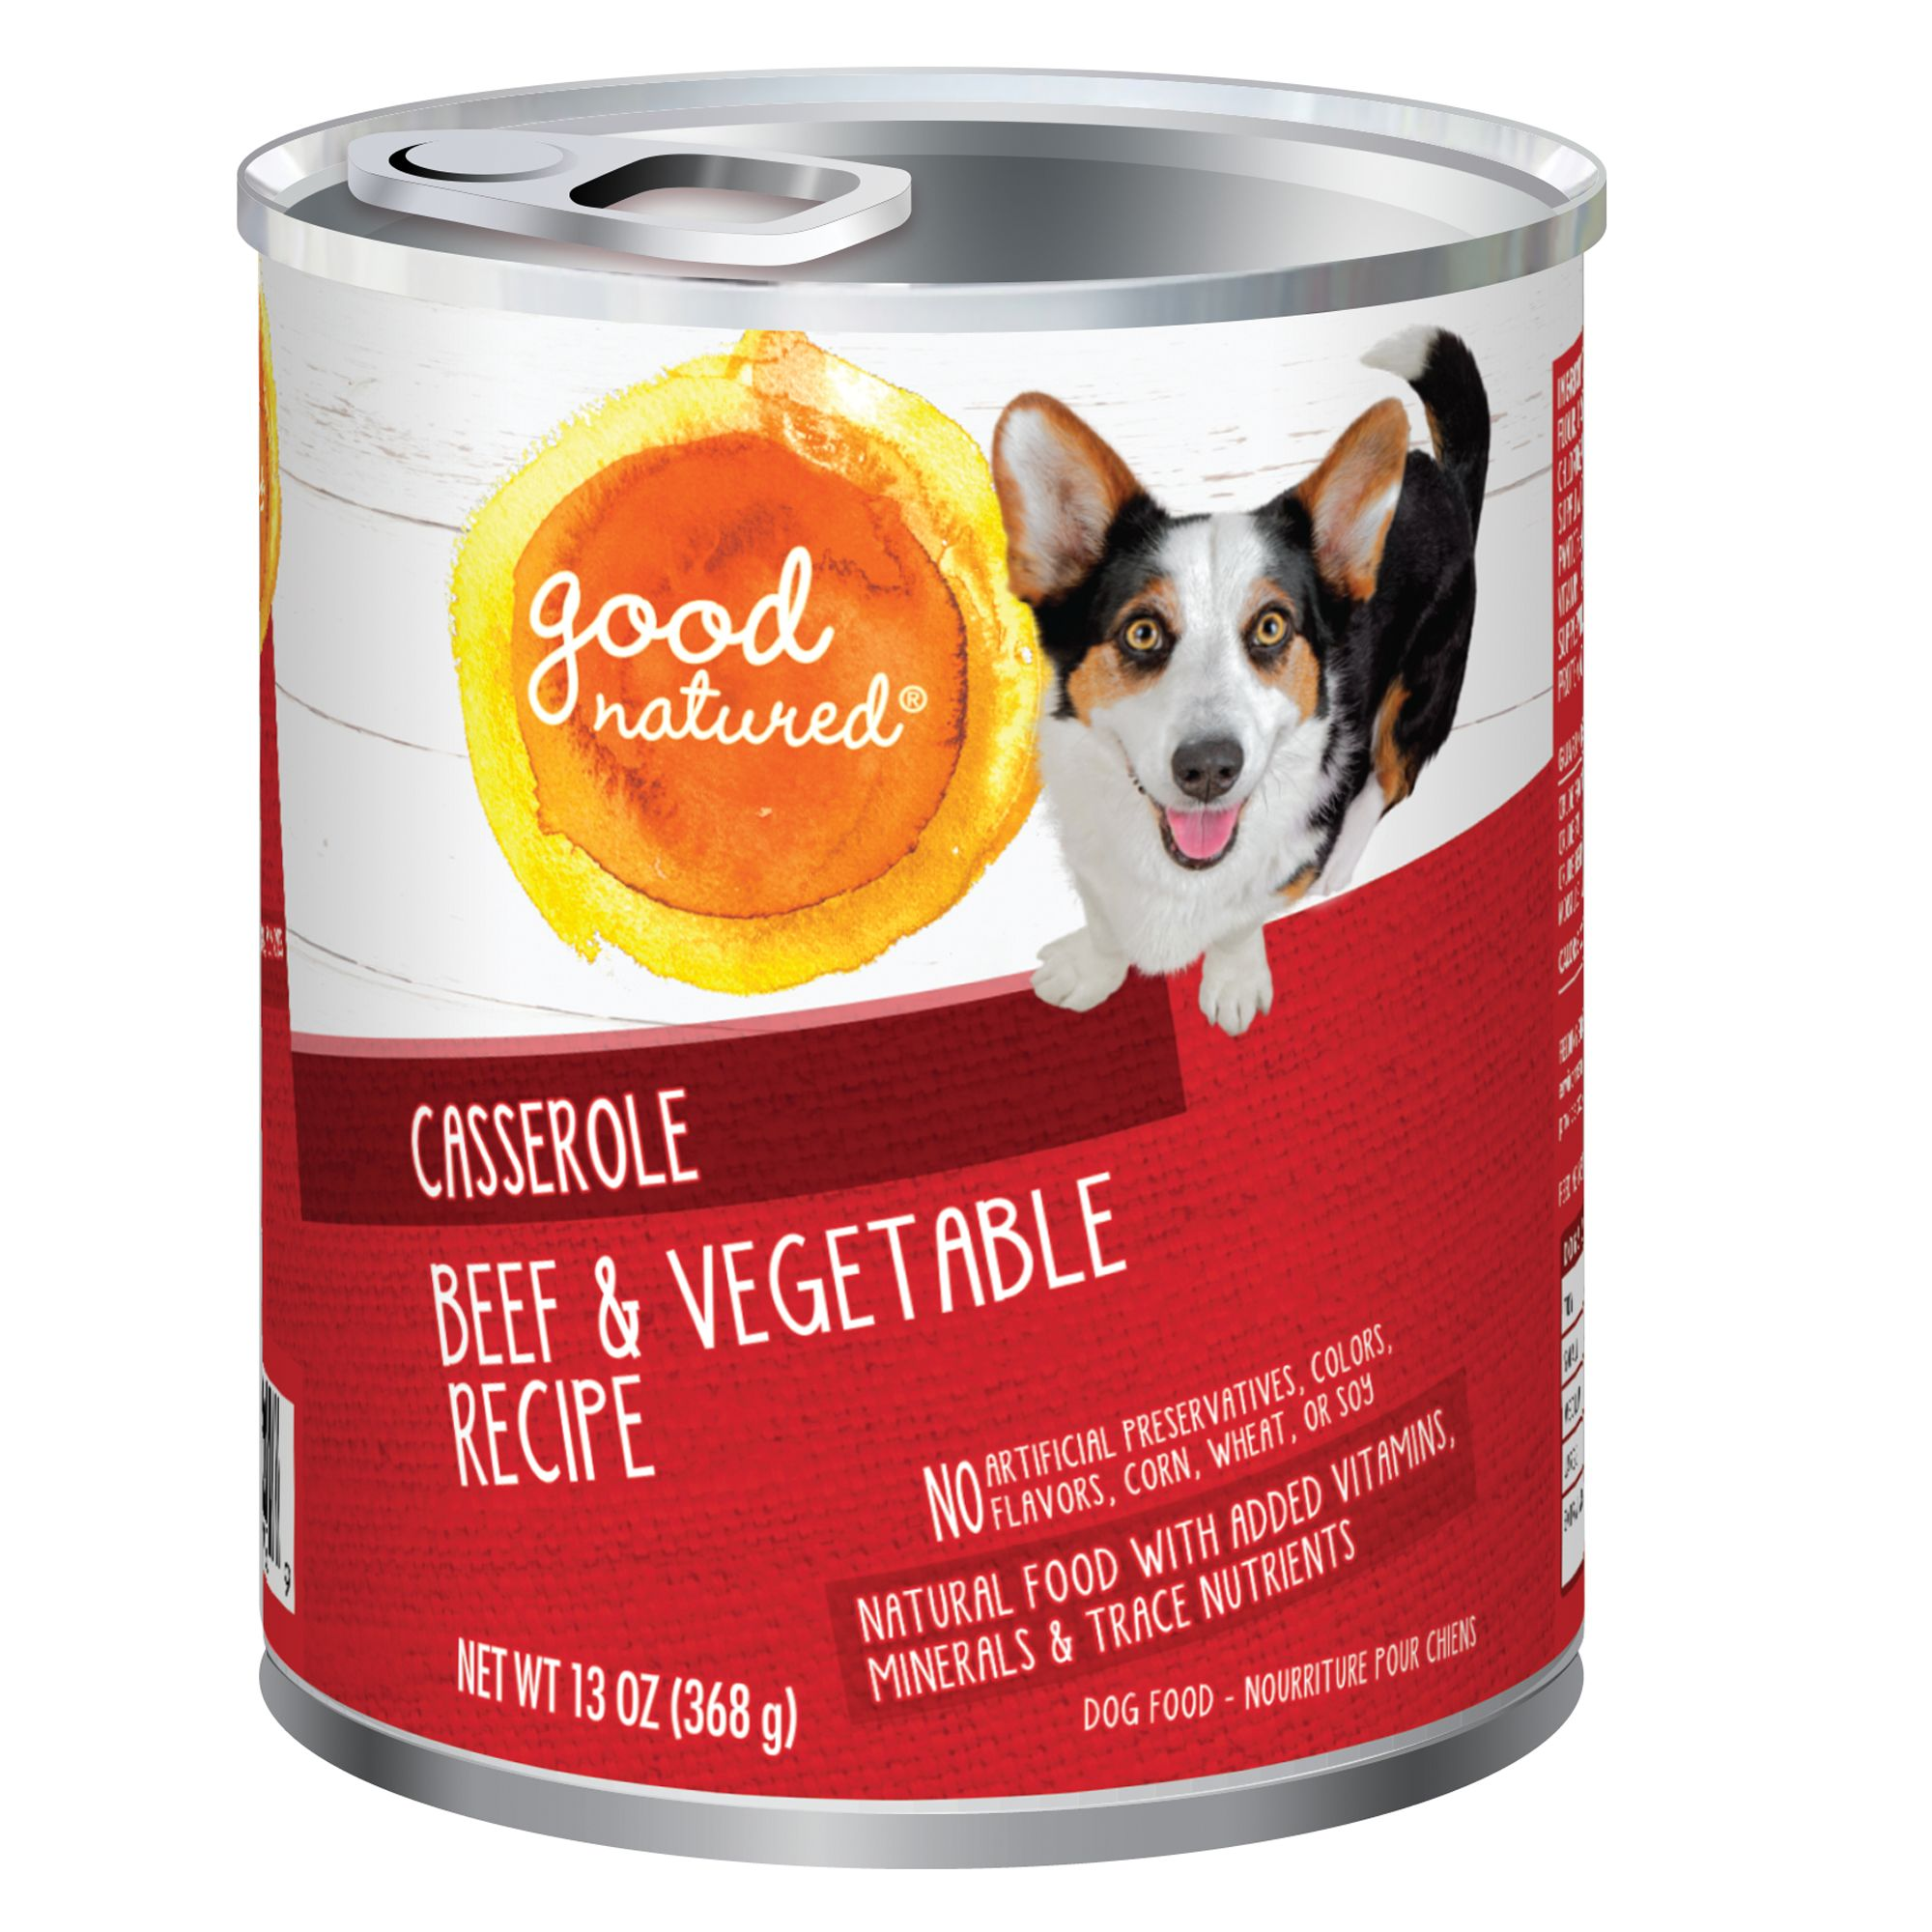 Good Natured, Dog Food - Natural, Beef and Vegetable, Casserole